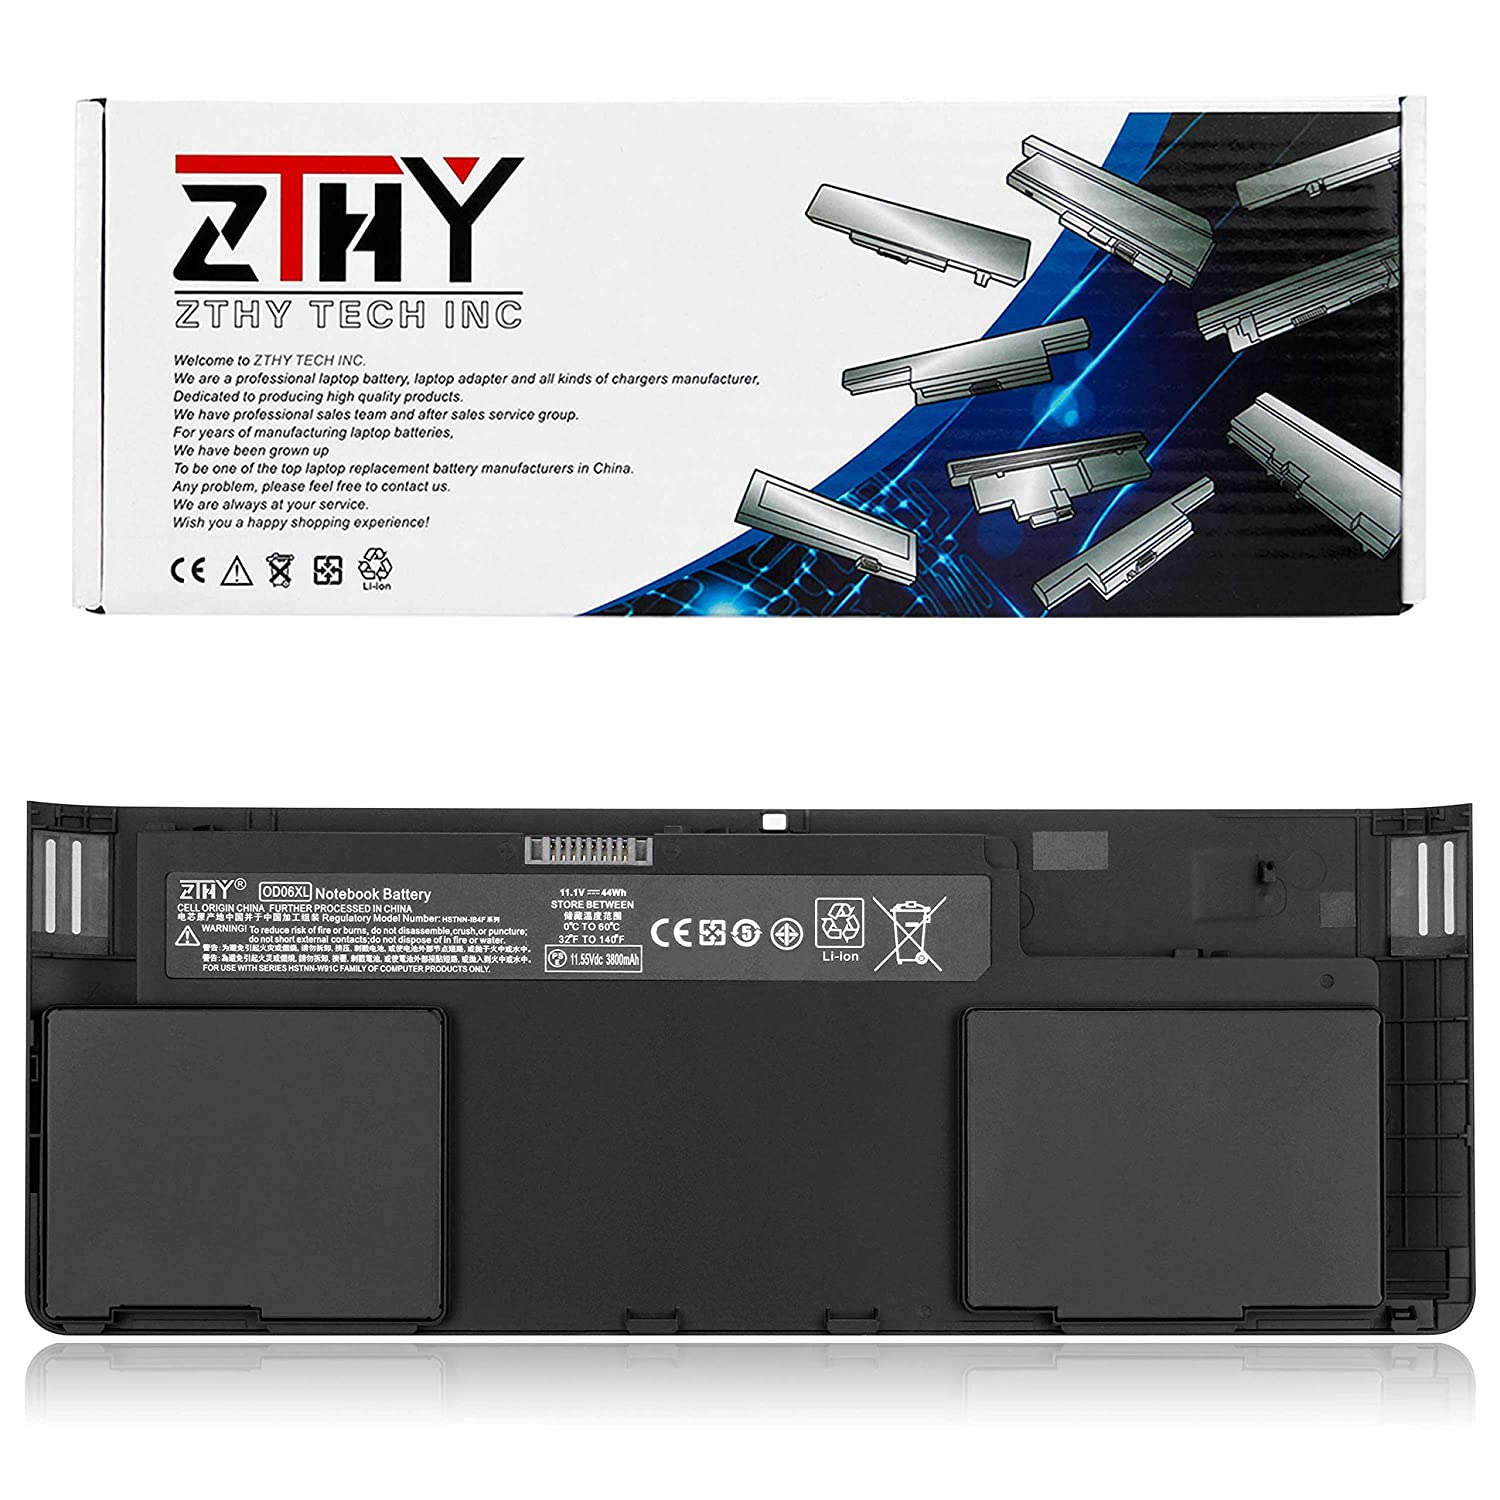 ZTHY Compatible OD06XL Laptop Battery Replacement for Hp Elitebook Revolve 810 G1 G2 G3 Series Tablet 0D06XL OD06 698750-171 698750-1C1 698943-001 H6L25AA ...